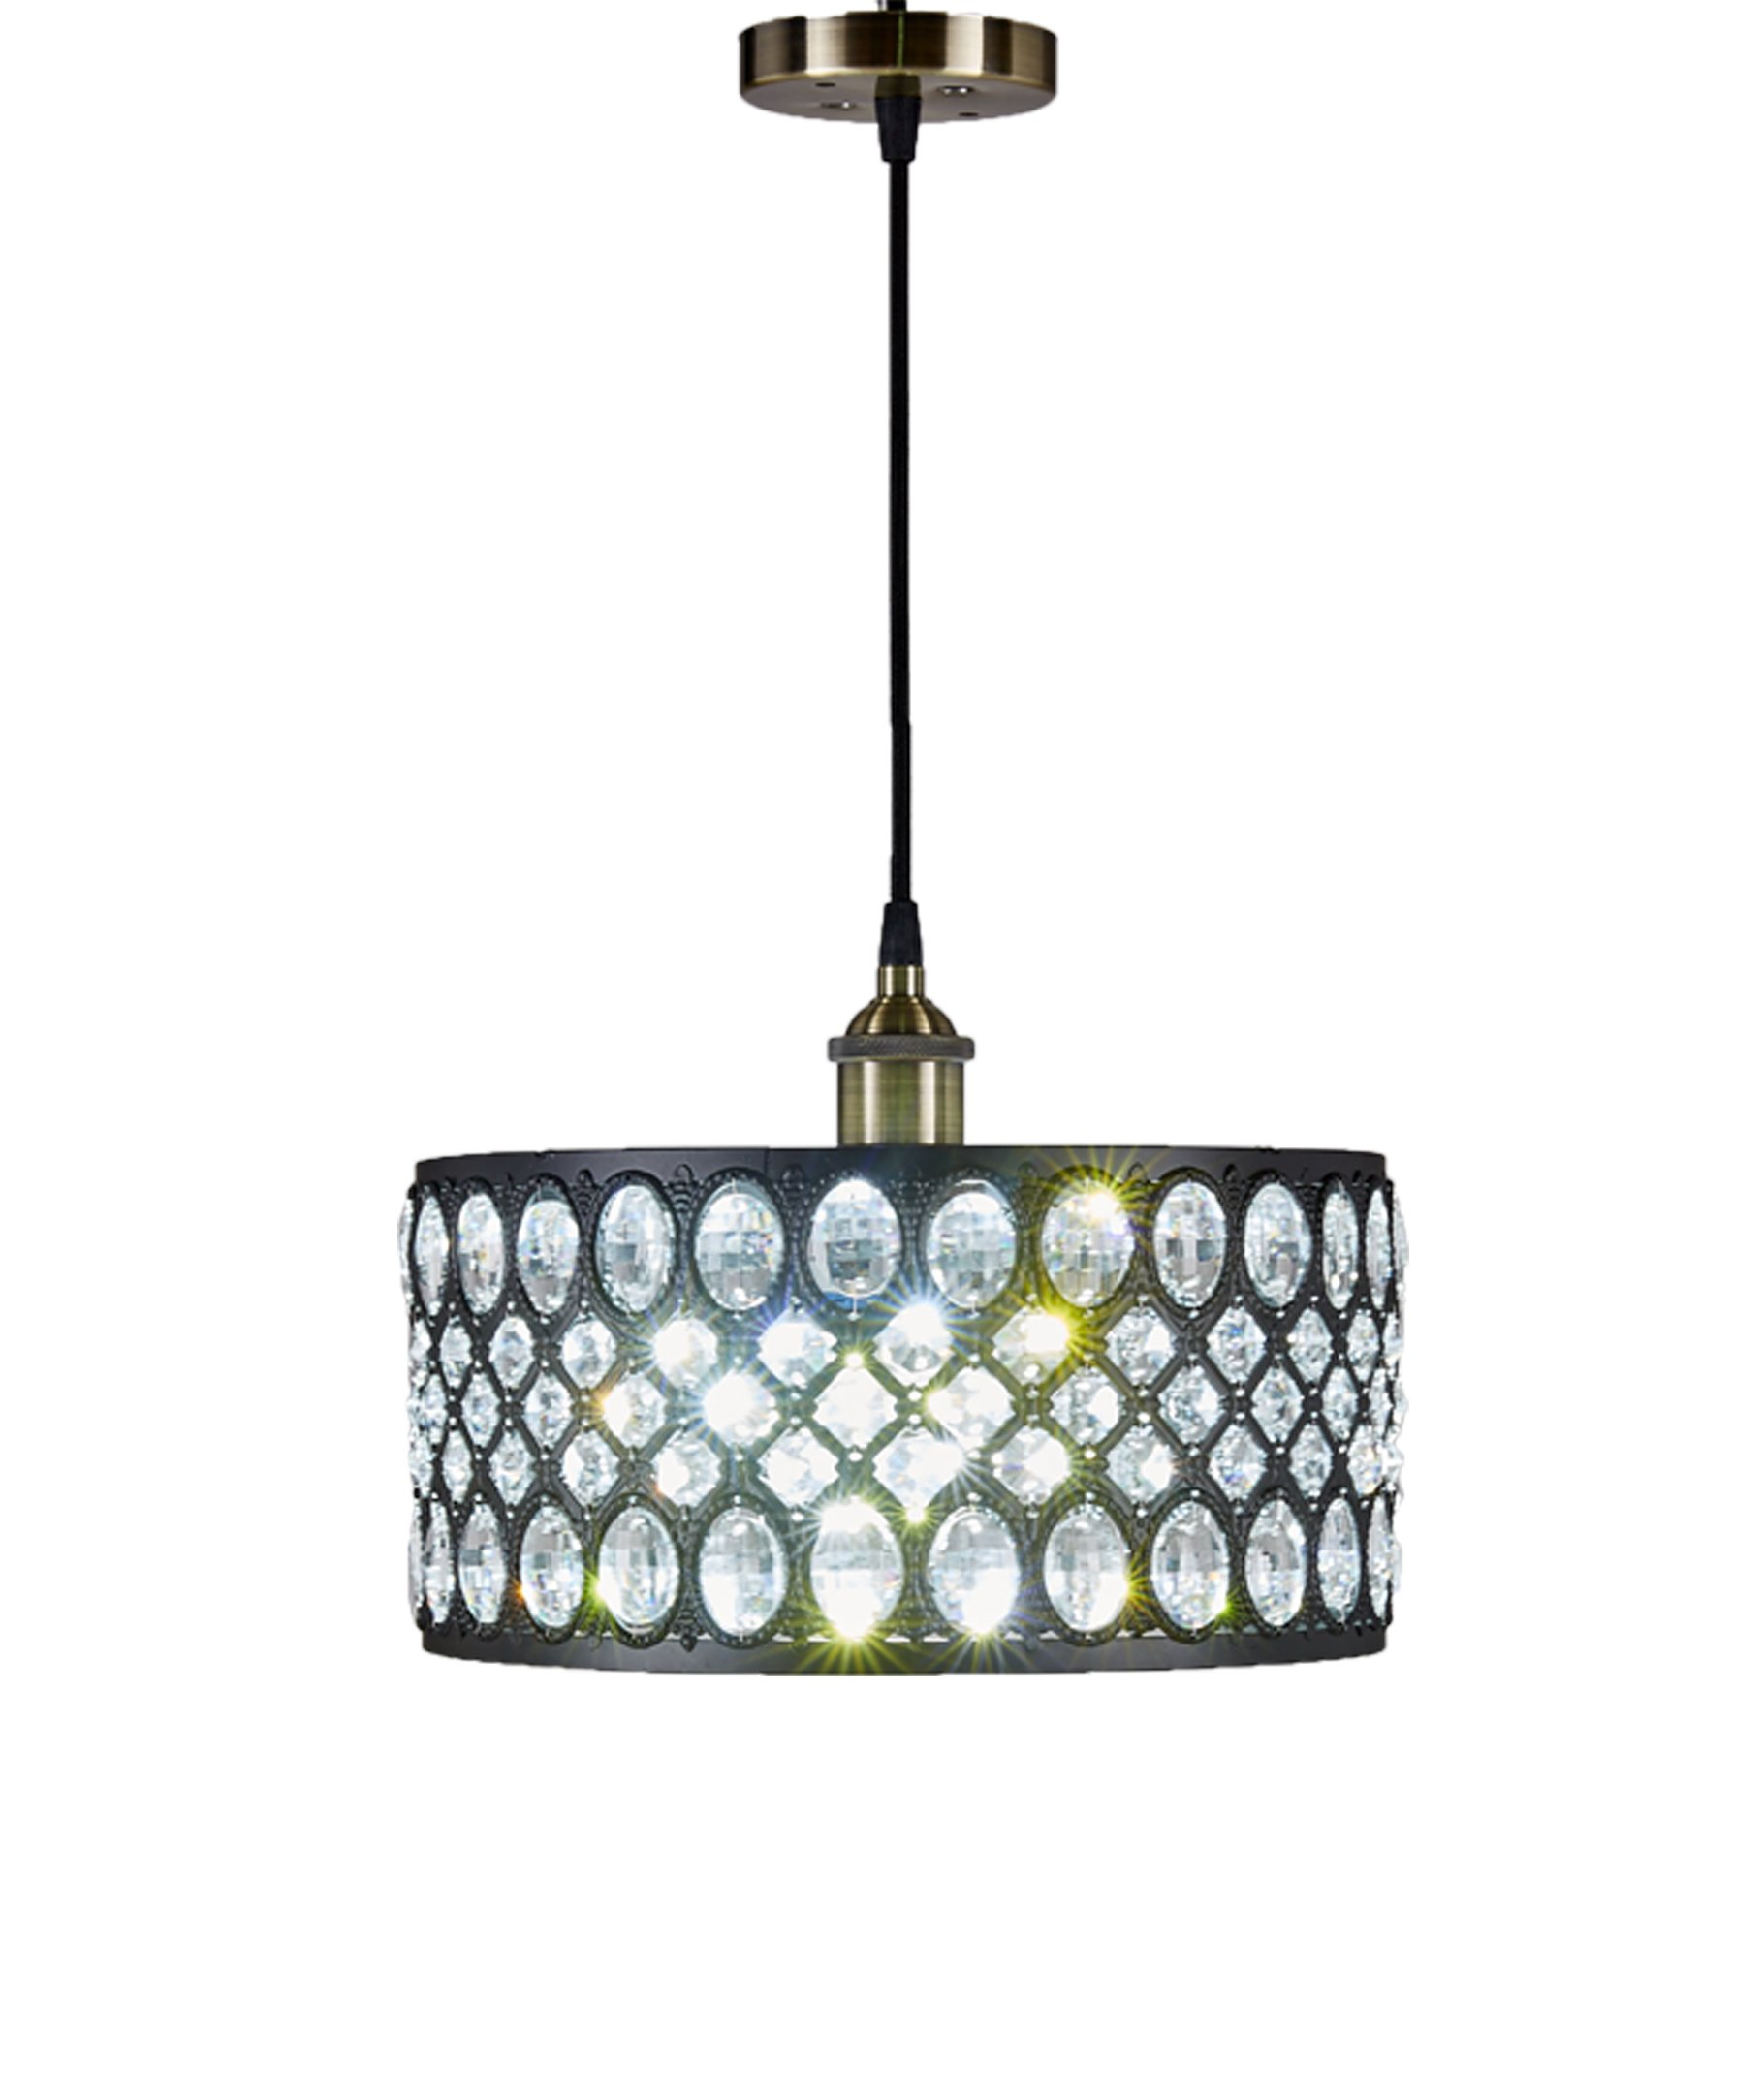 """Diamond Life 1-Light Black Finish Modern Crystal Chandelier Pendant Hanging Lighting Fixture - Style: Modern / Contemporary, Pendant Hanging Lighting Fixture Material: Metal, Crystal; Finish: Black Dimensions: Shade: 12""""Wx12""""Dx6""""H; Fixture: 12x12x44 inches (Hanging); Weight: 6 lbs - kitchen-dining-room-decor, kitchen-dining-room, chandeliers-lighting - 71MH1EG5X%2BL -"""